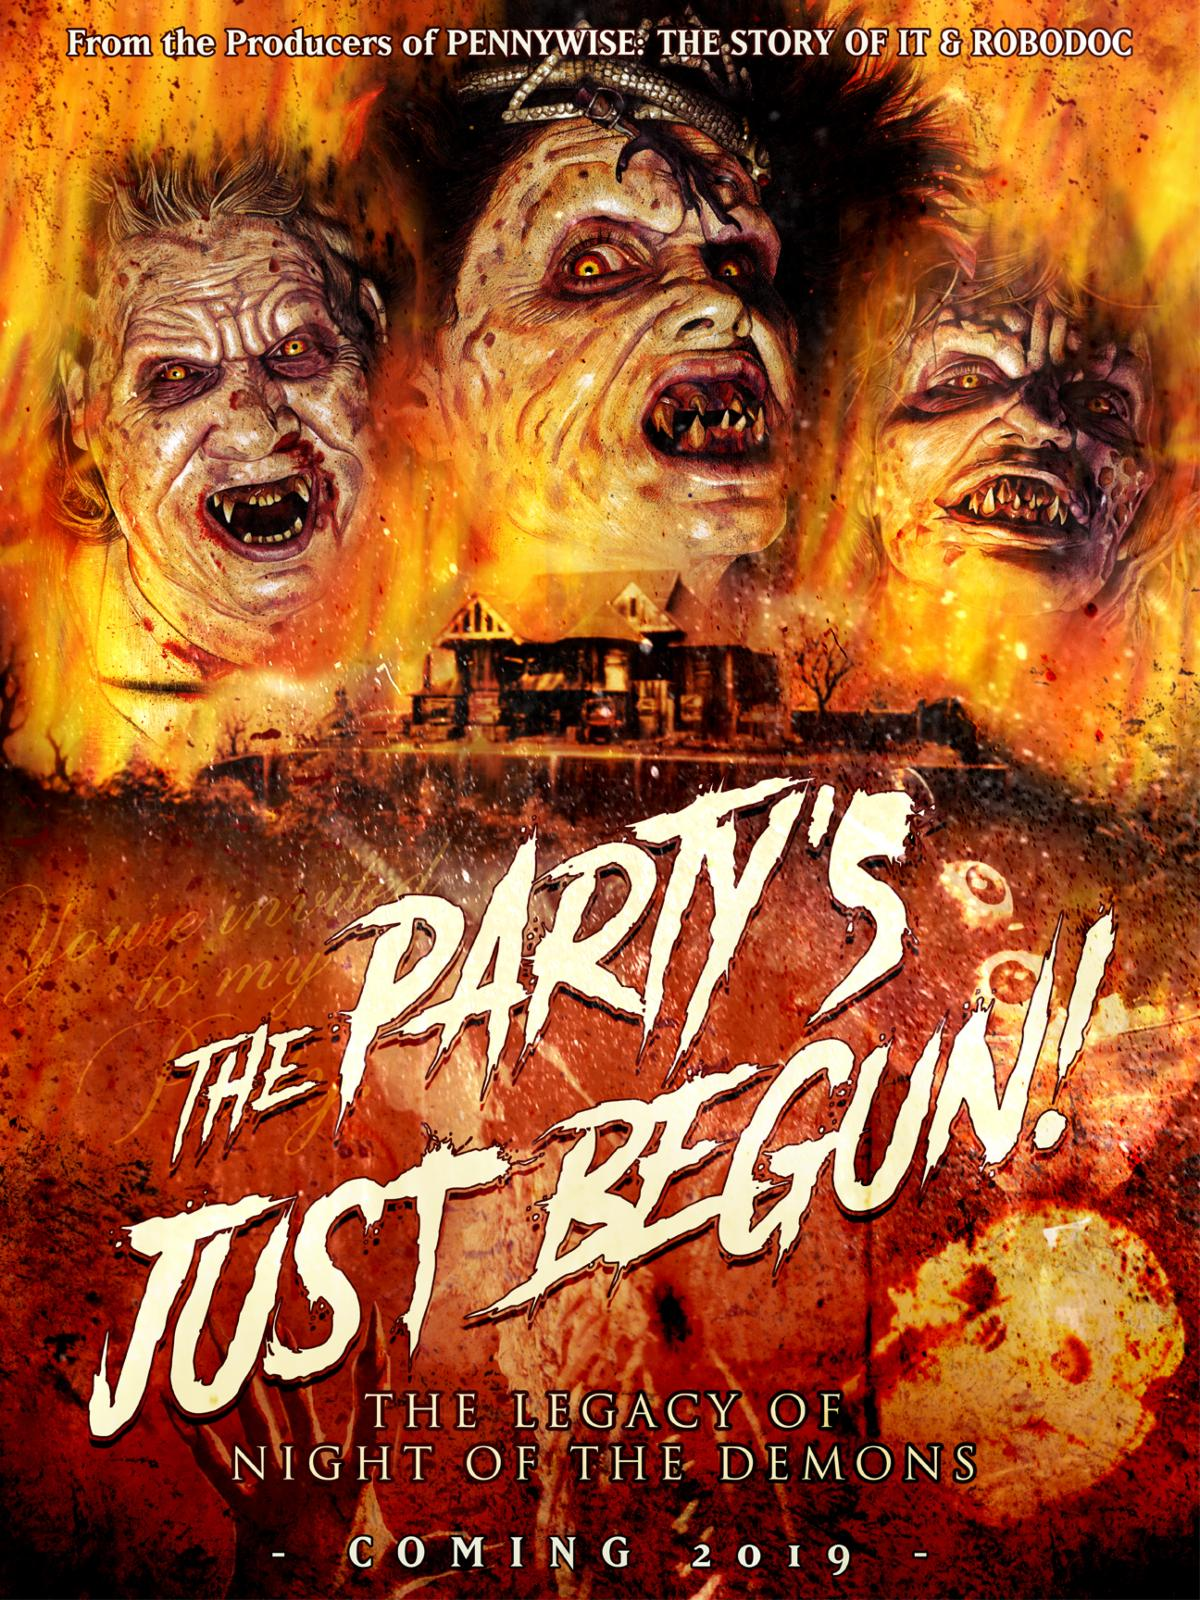 Amelia Kinkade Night Of The Demons trailer released for new documentary the party's just begun